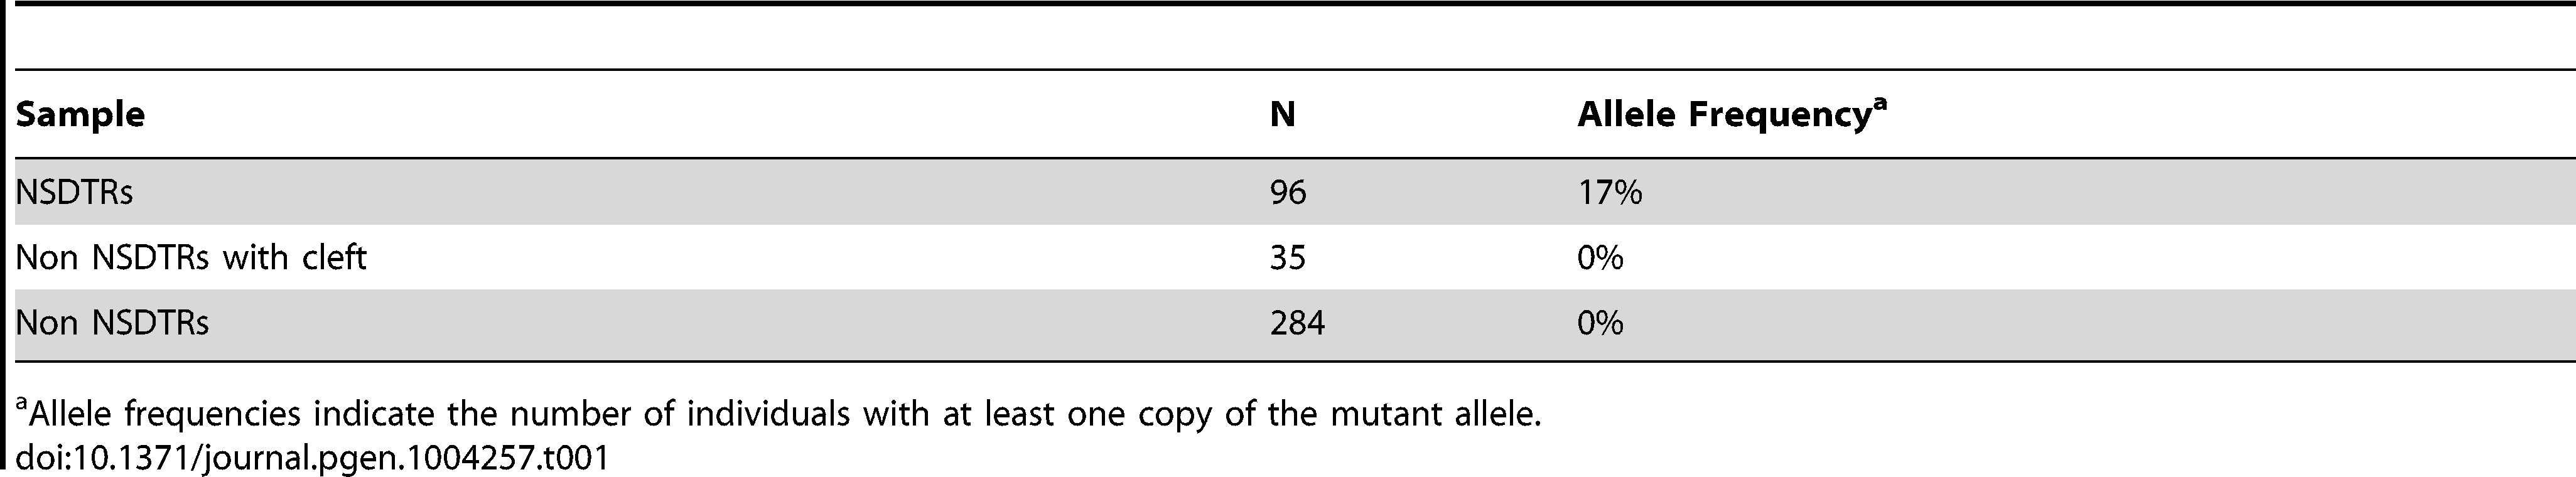 Summary of allele frequencies of genotyping results.